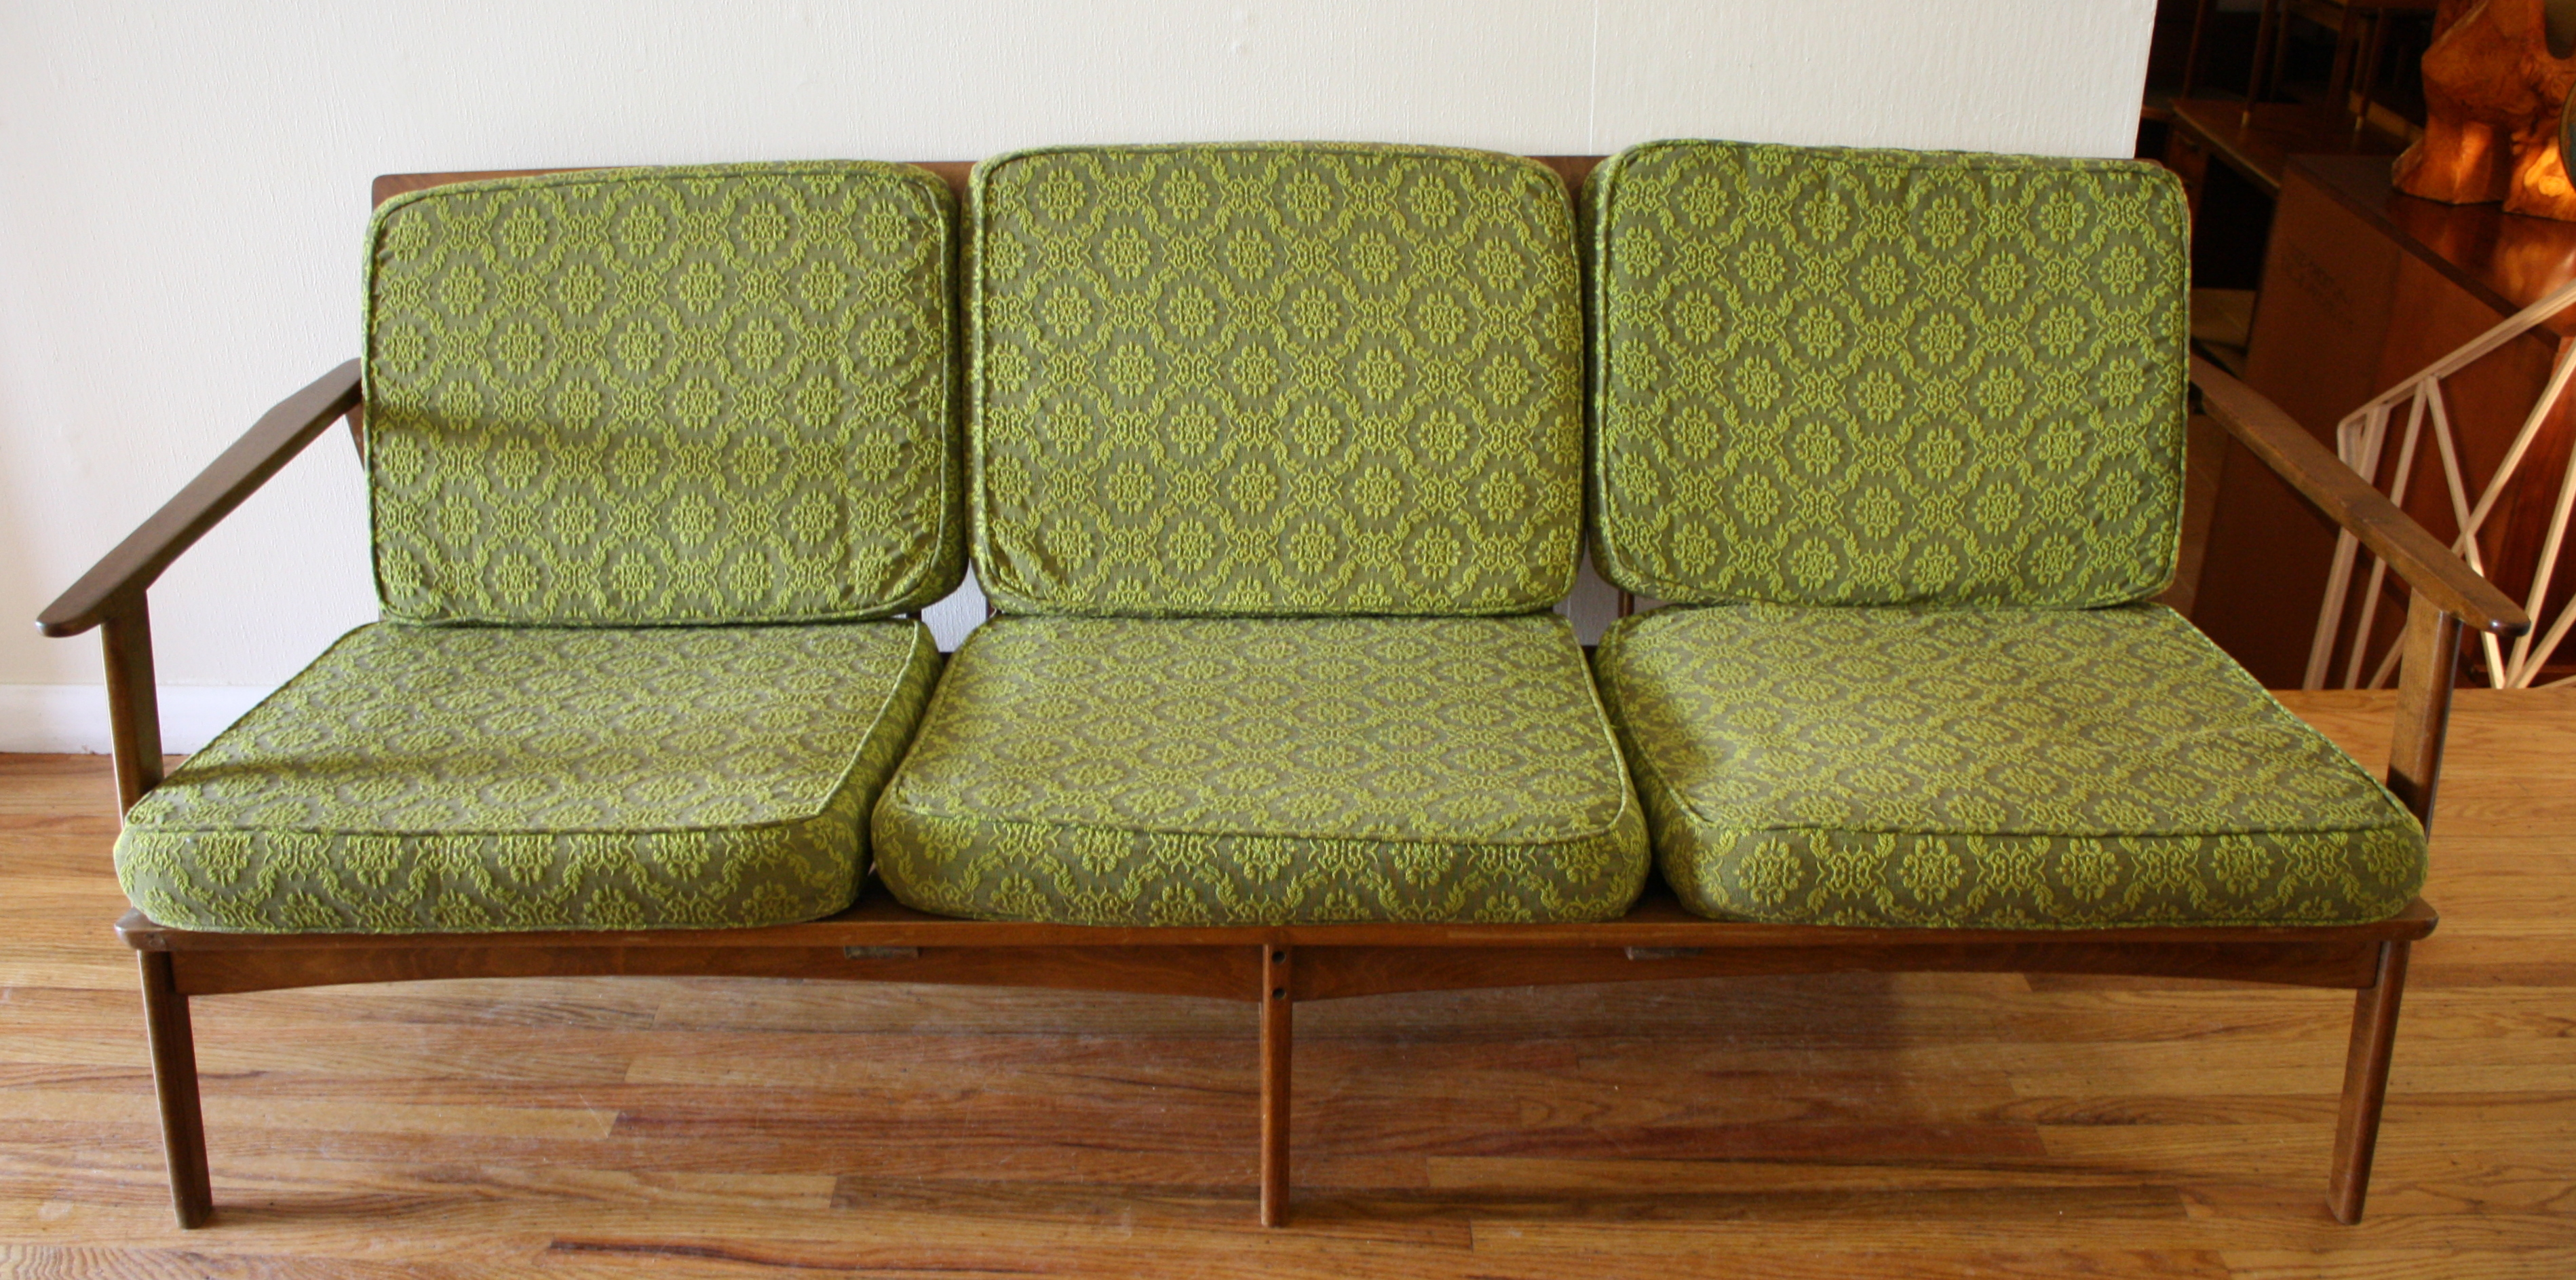 Baumritter Couch And Chair MidCentury